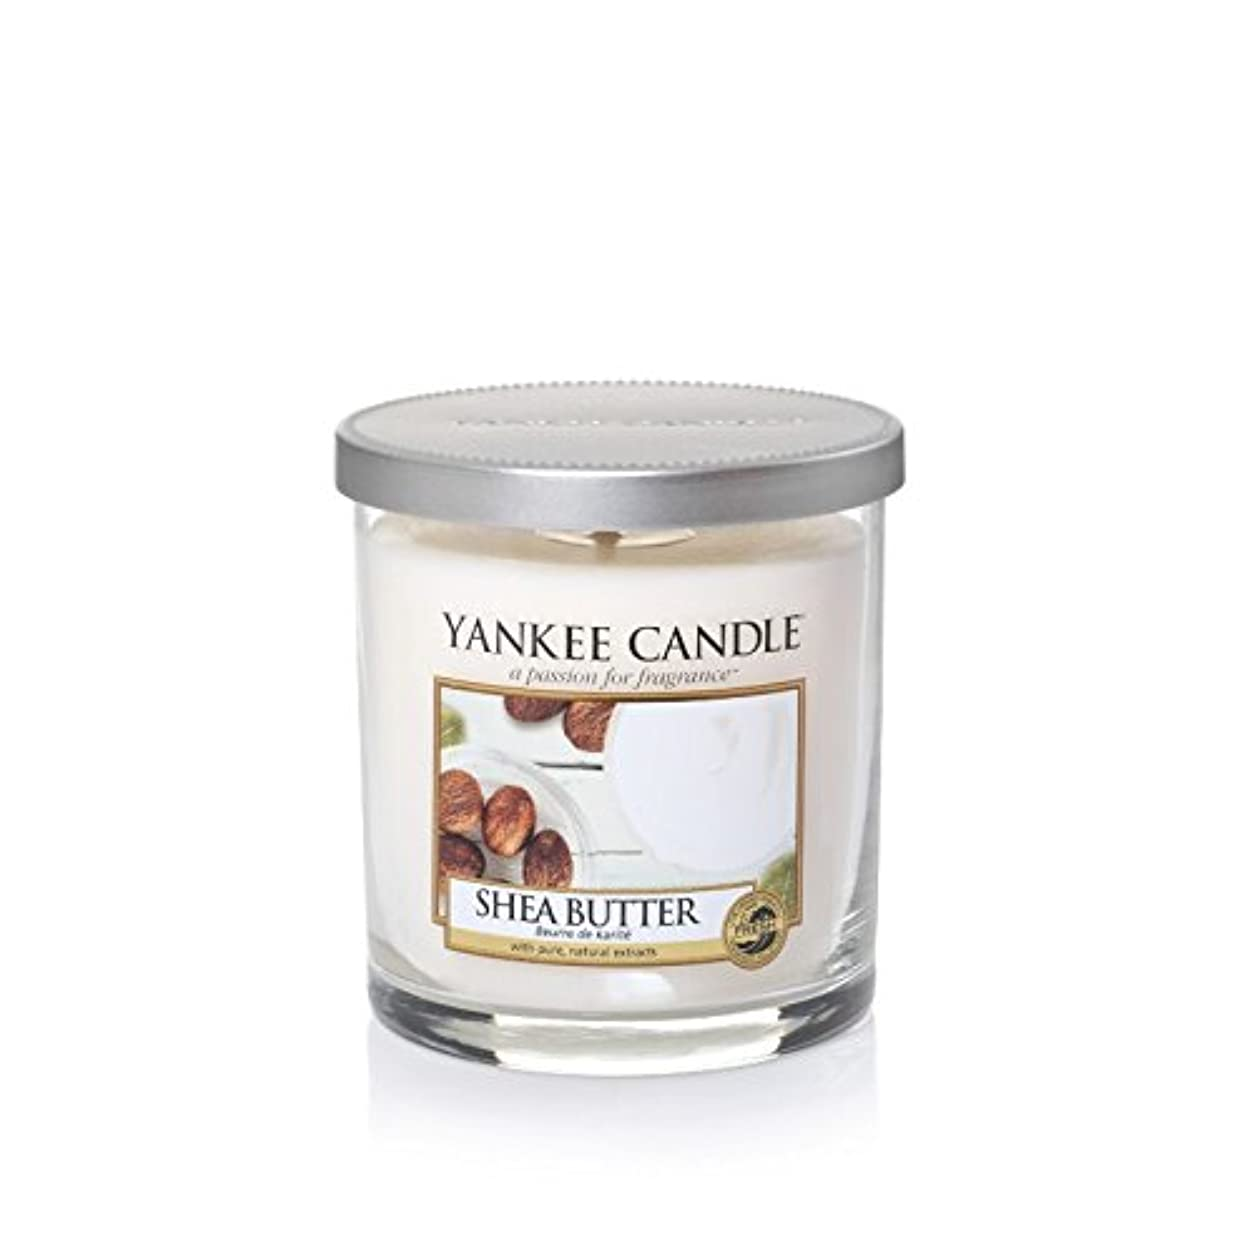 Yankee Candles Small Pillar Candle - Shea Butter (Pack of 2) - ヤンキーキャンドルの小さな柱キャンドル - シアバター (x2) [並行輸入品]